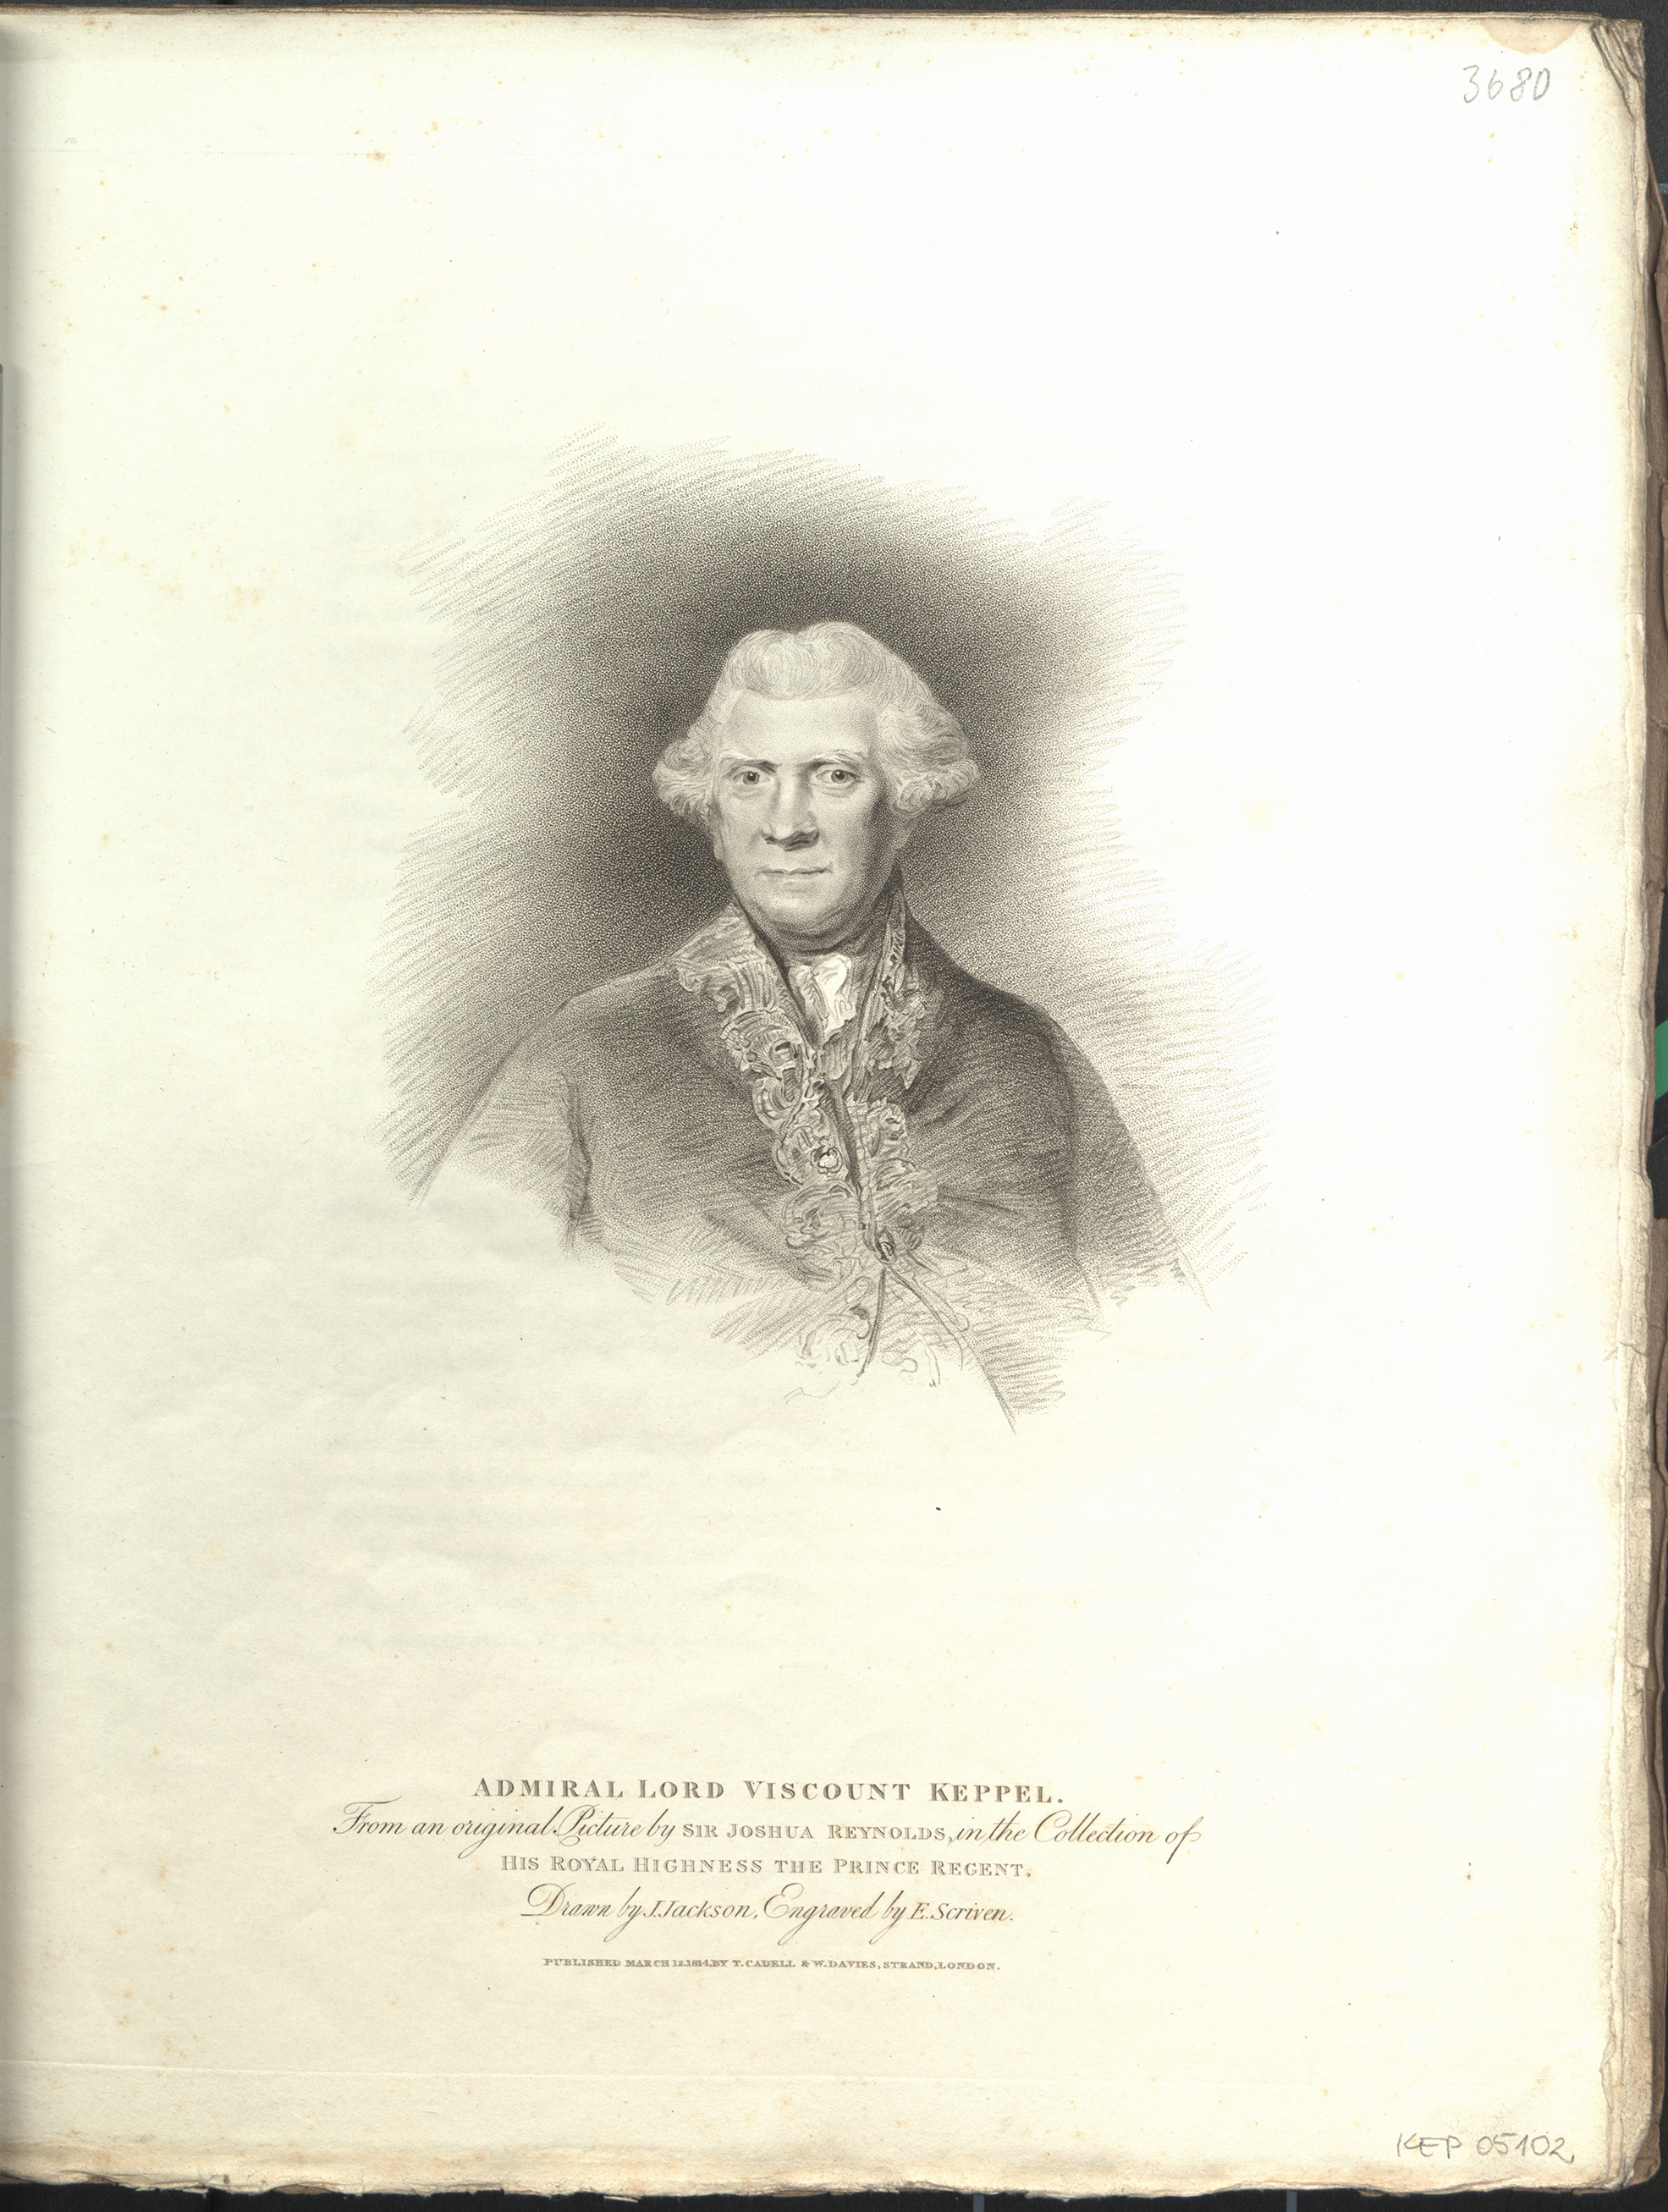 Admiral Lord Viscount Keppel.